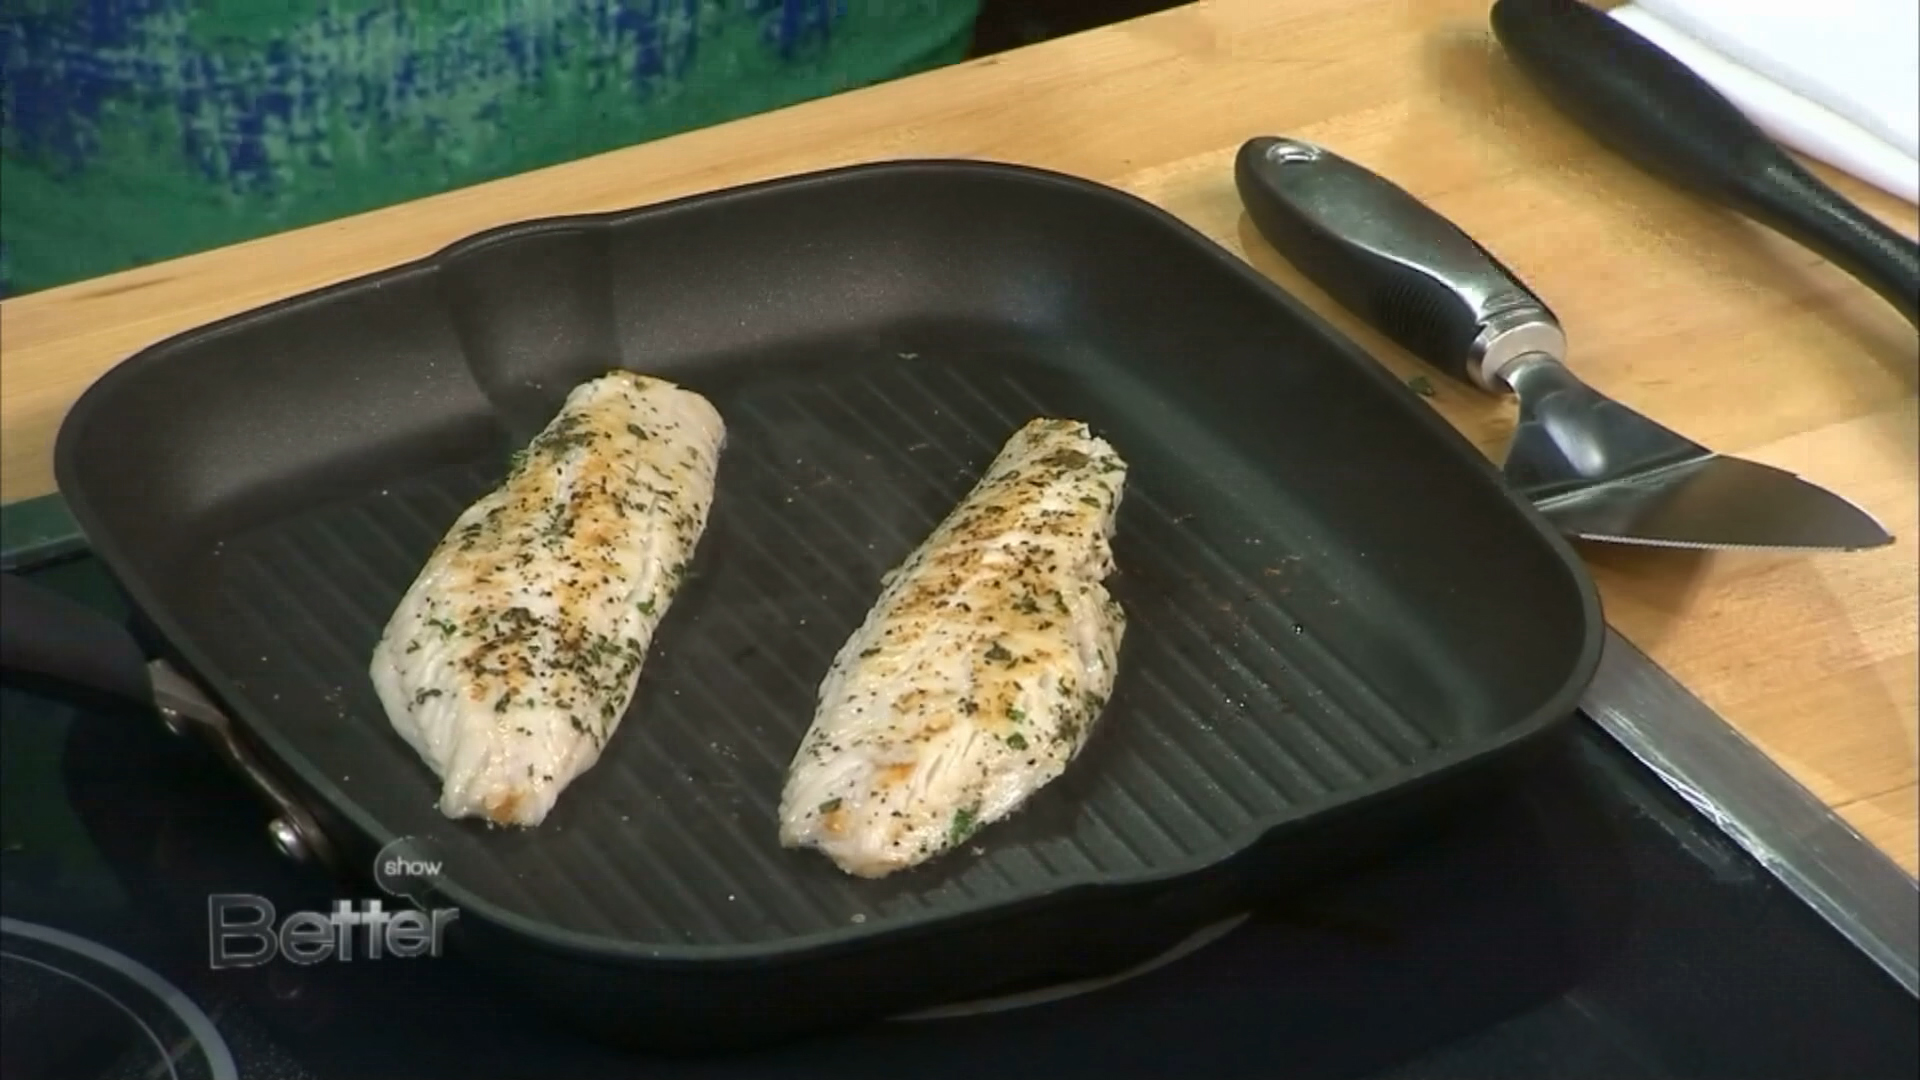 Chef Charles Bowman's Grilled Black Sea Bass Recipe